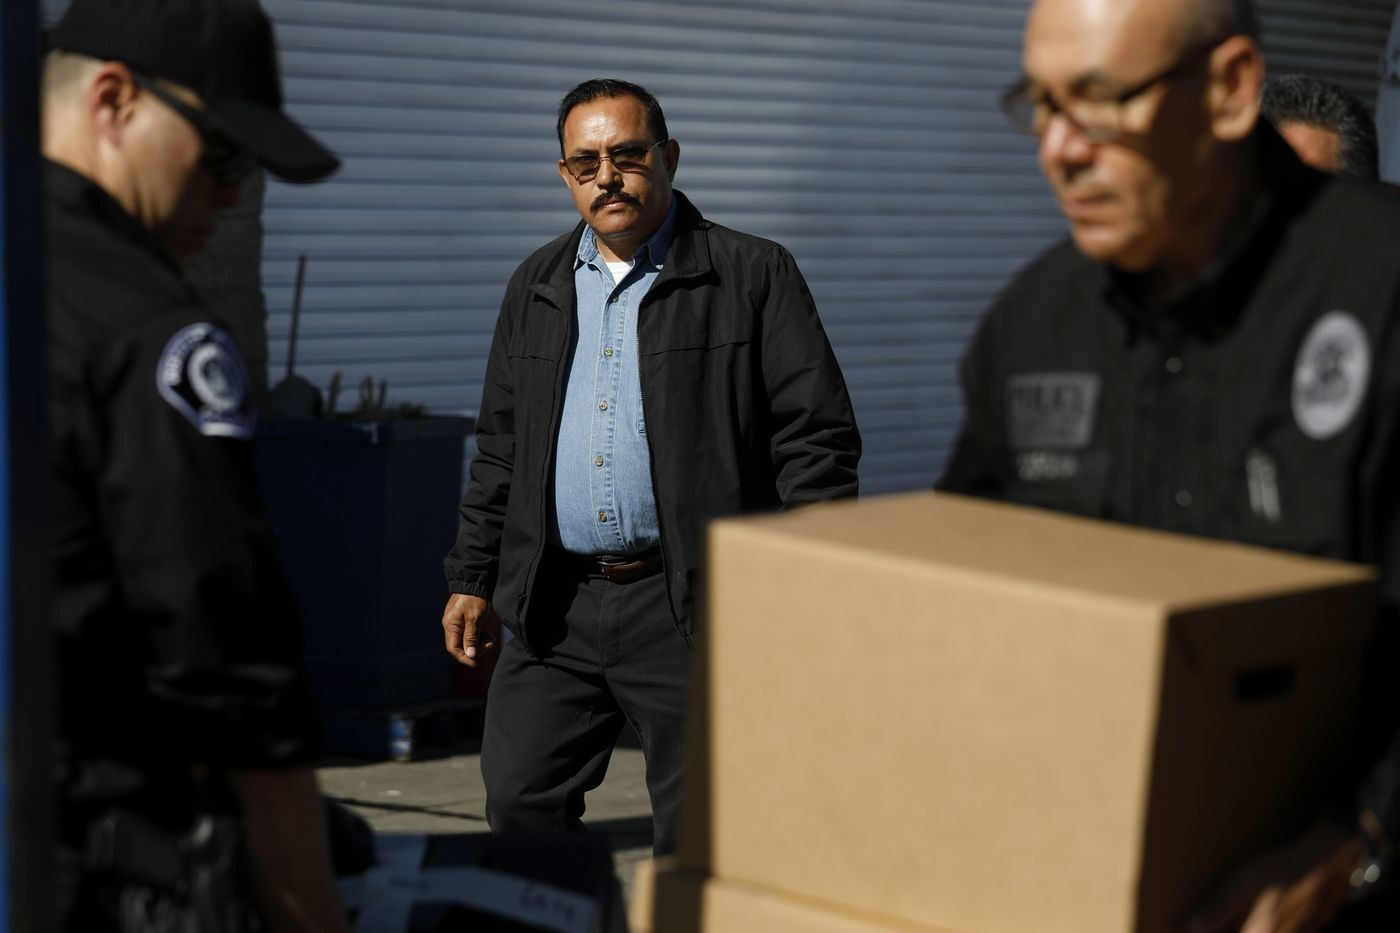 City of Maywood Mayor Ramon Medina walks with investigators from the Los Angeles County District Attorney's Office as they remove computers and boxes with files from his mechanic shop, R&M Auto Service Inc., on Feb. 8., 2018. (Credit: Gary Coronado / Los Angeles Times)